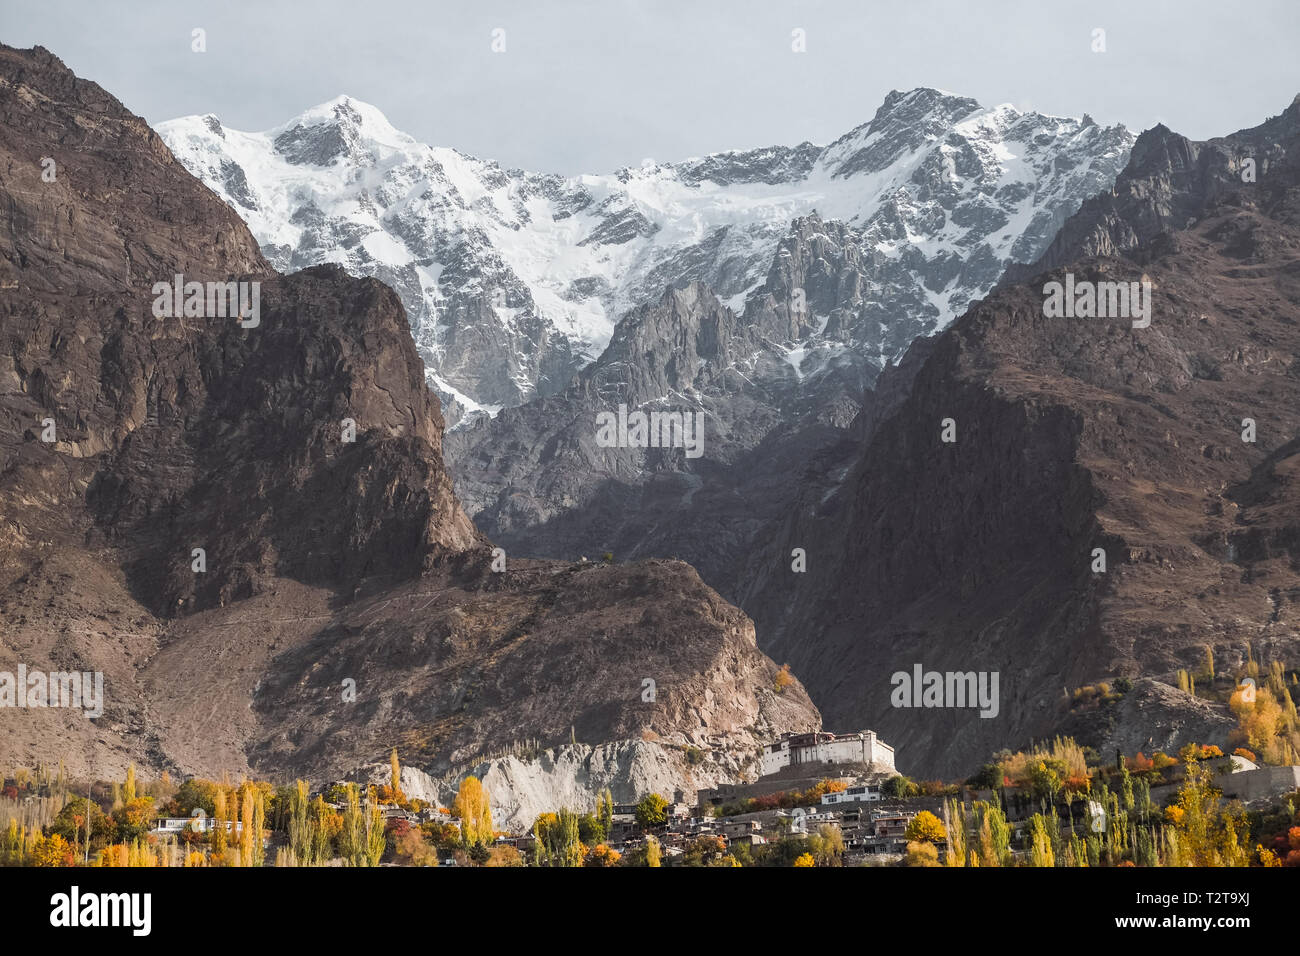 Landscape view of snow capped Ultar Sar mountain in Karakoram range with foliage in autumn in Karimabad. Hunza valley, Gilgit Baltistan, Pakistan. Stock Photo